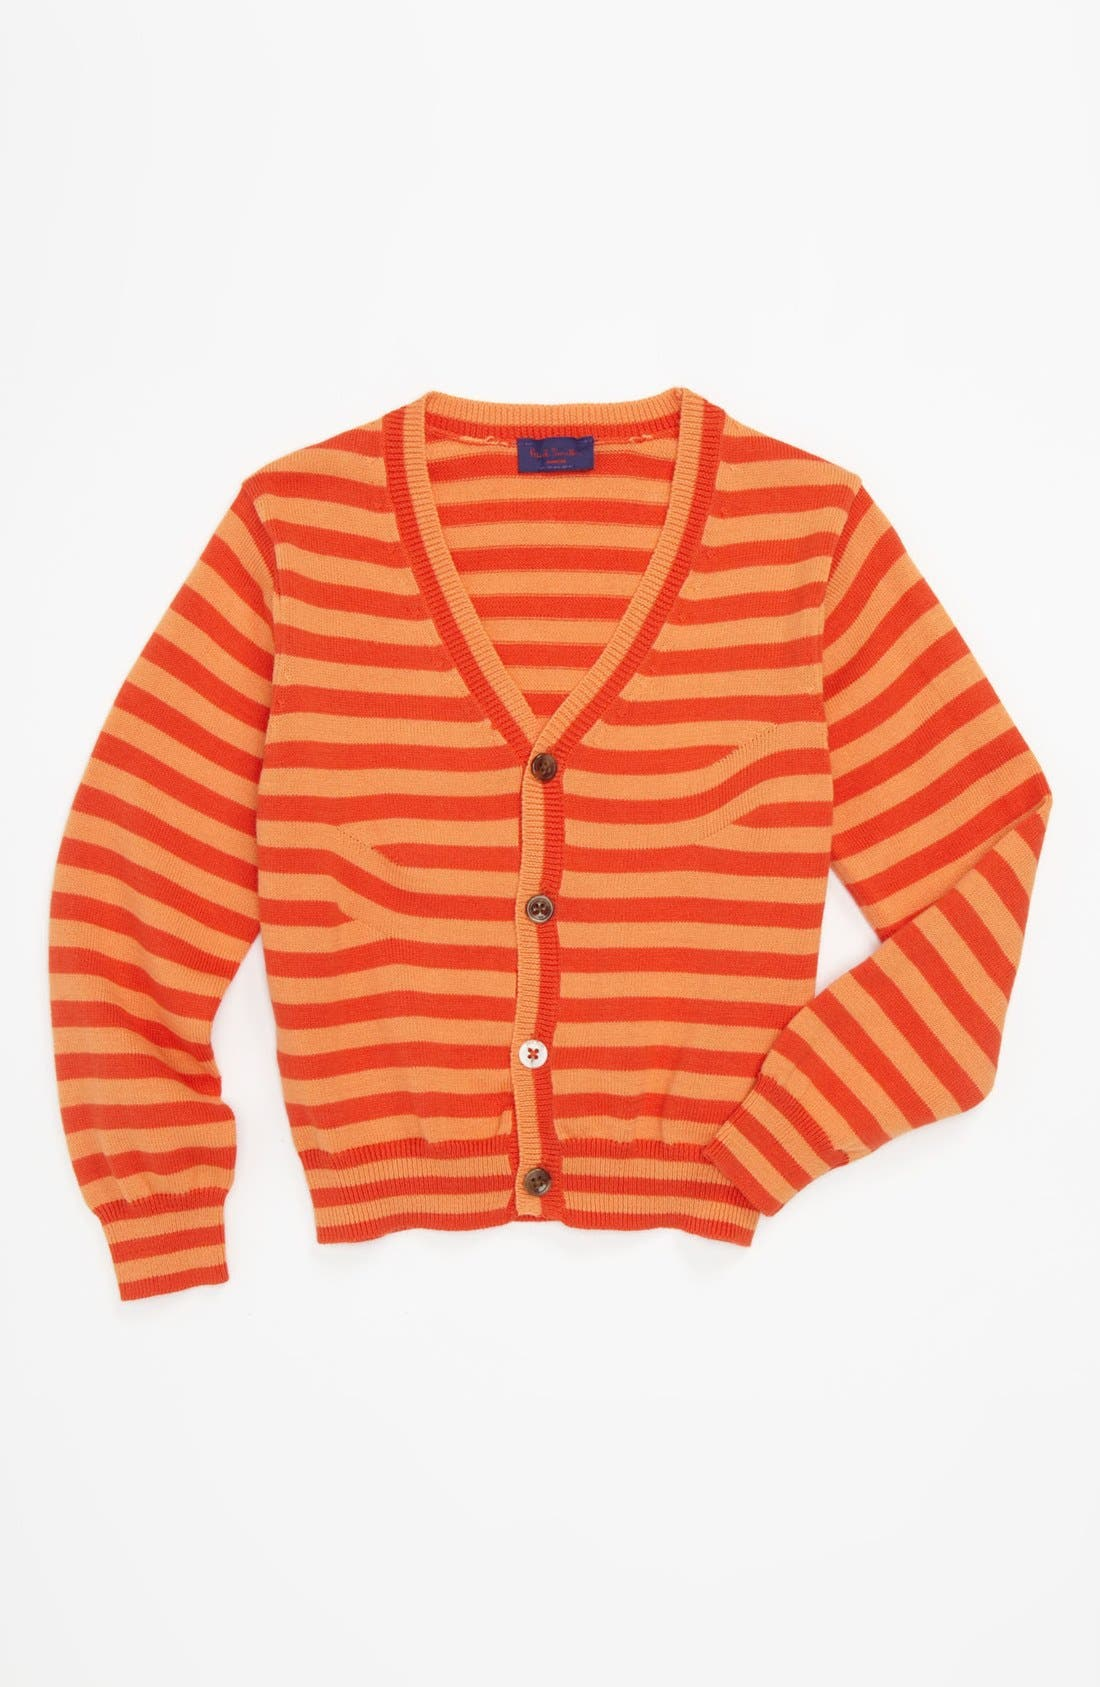 Alternate Image 1 Selected - Paul Smith Junior Cardigan (Baby)